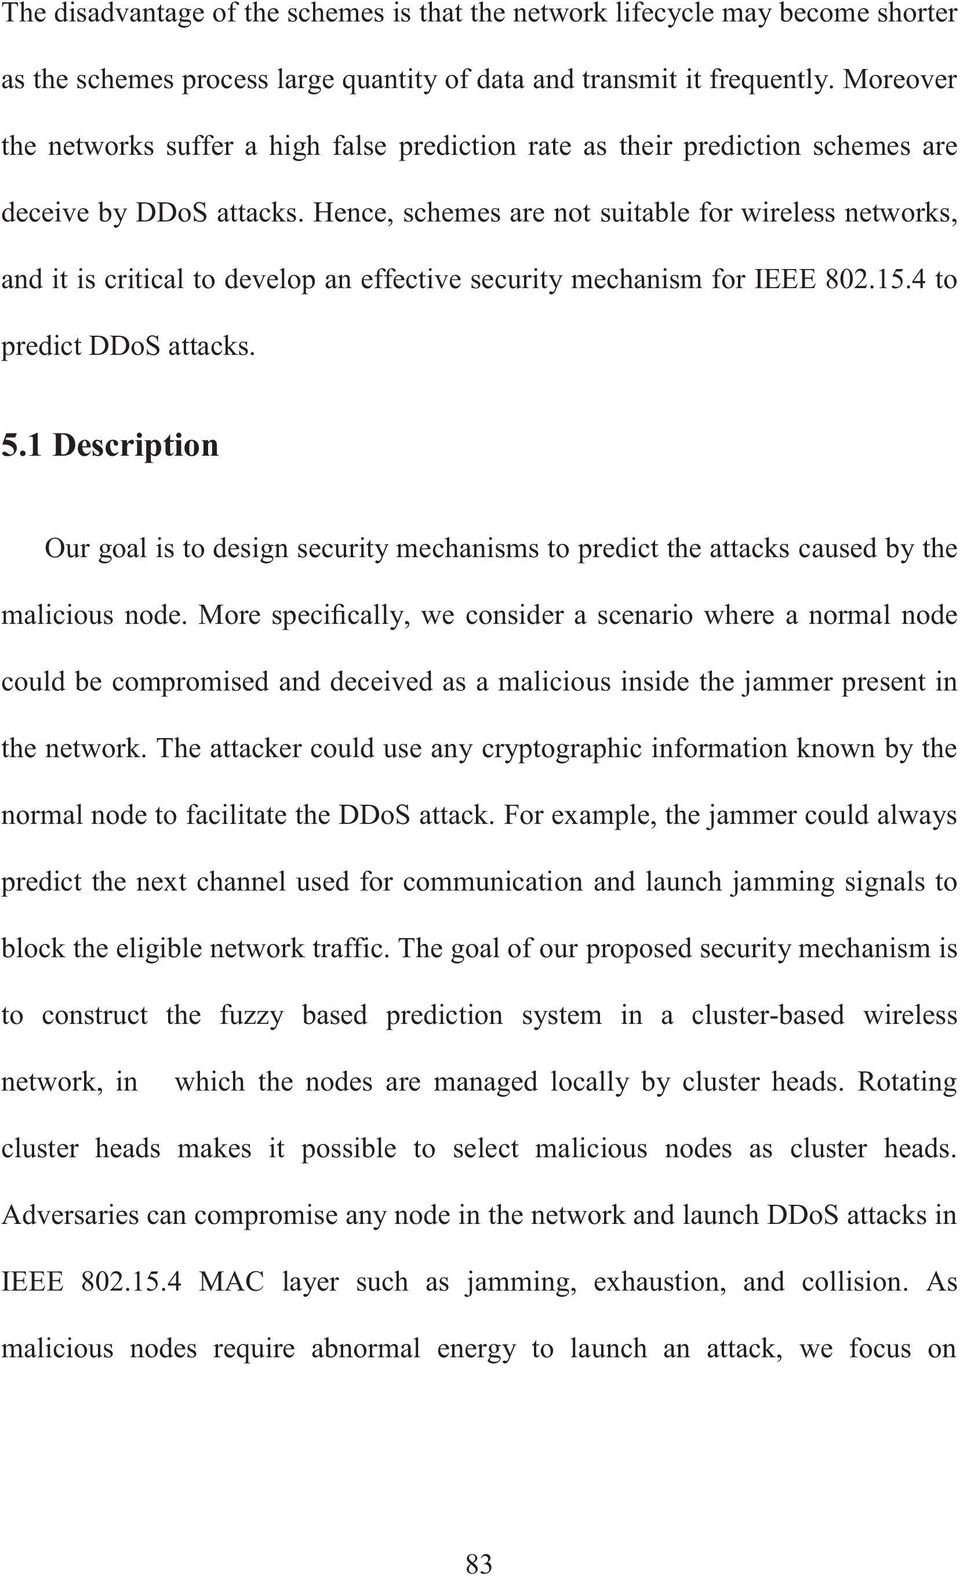 Hence, schemes are not suitable for wireless networks, and it is critical to develop an effective security mechanism for IEEE 802.15.4 to predict DDoS attacks. 5.